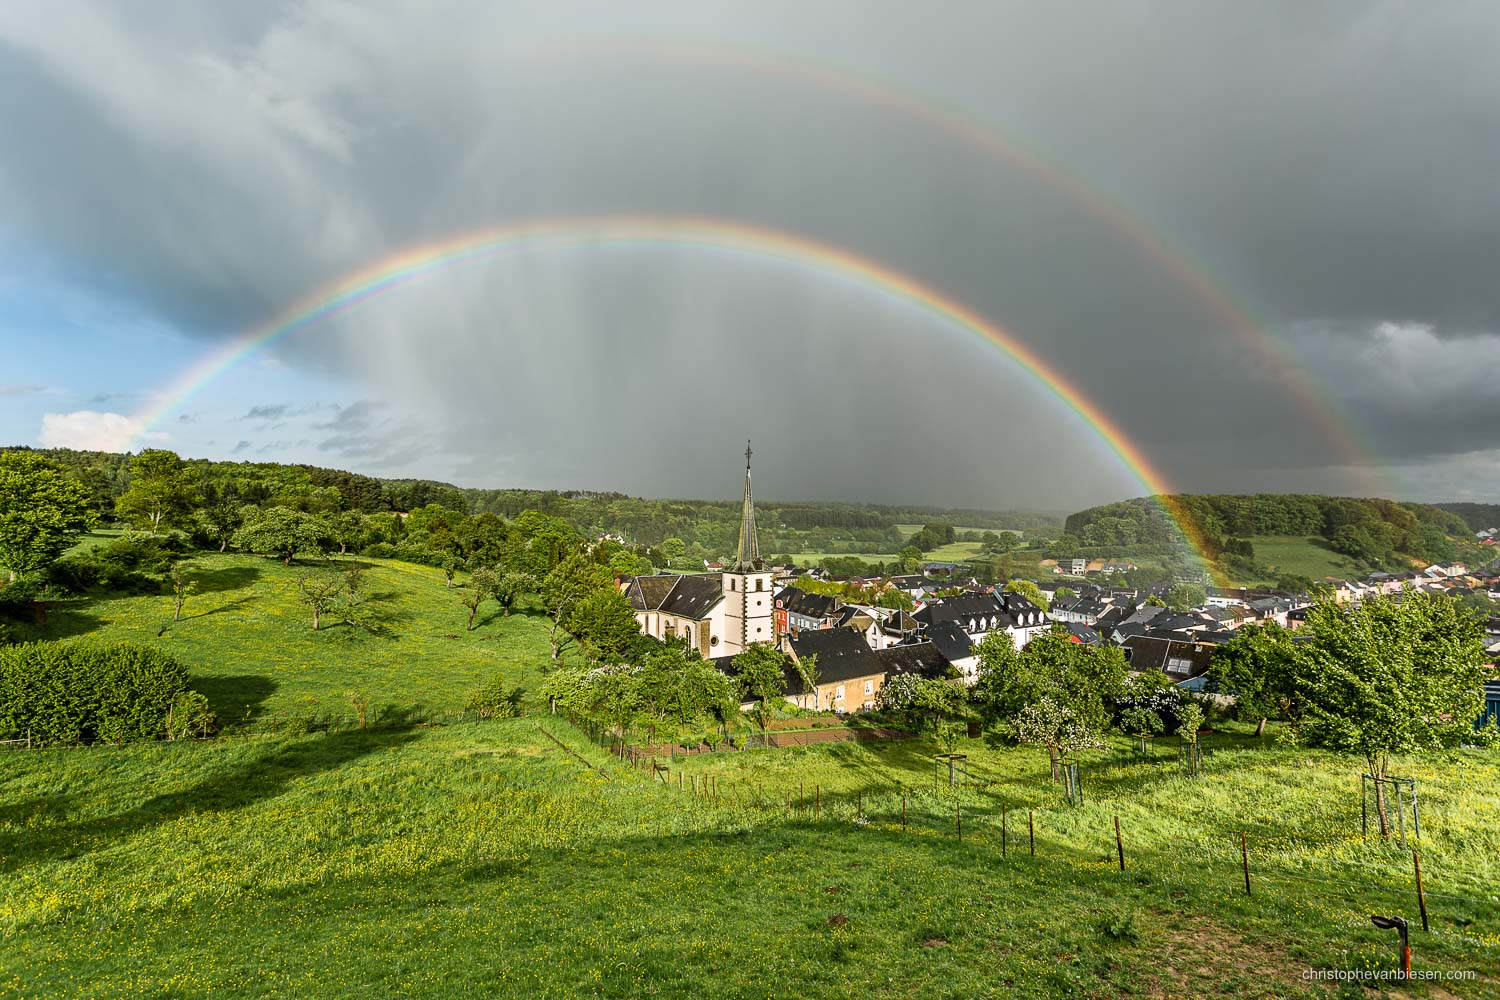 Spring in Luxembourg - Perfect rainbow above the Luxemburgish village of Hobscheid - Where Blue Birds Fly